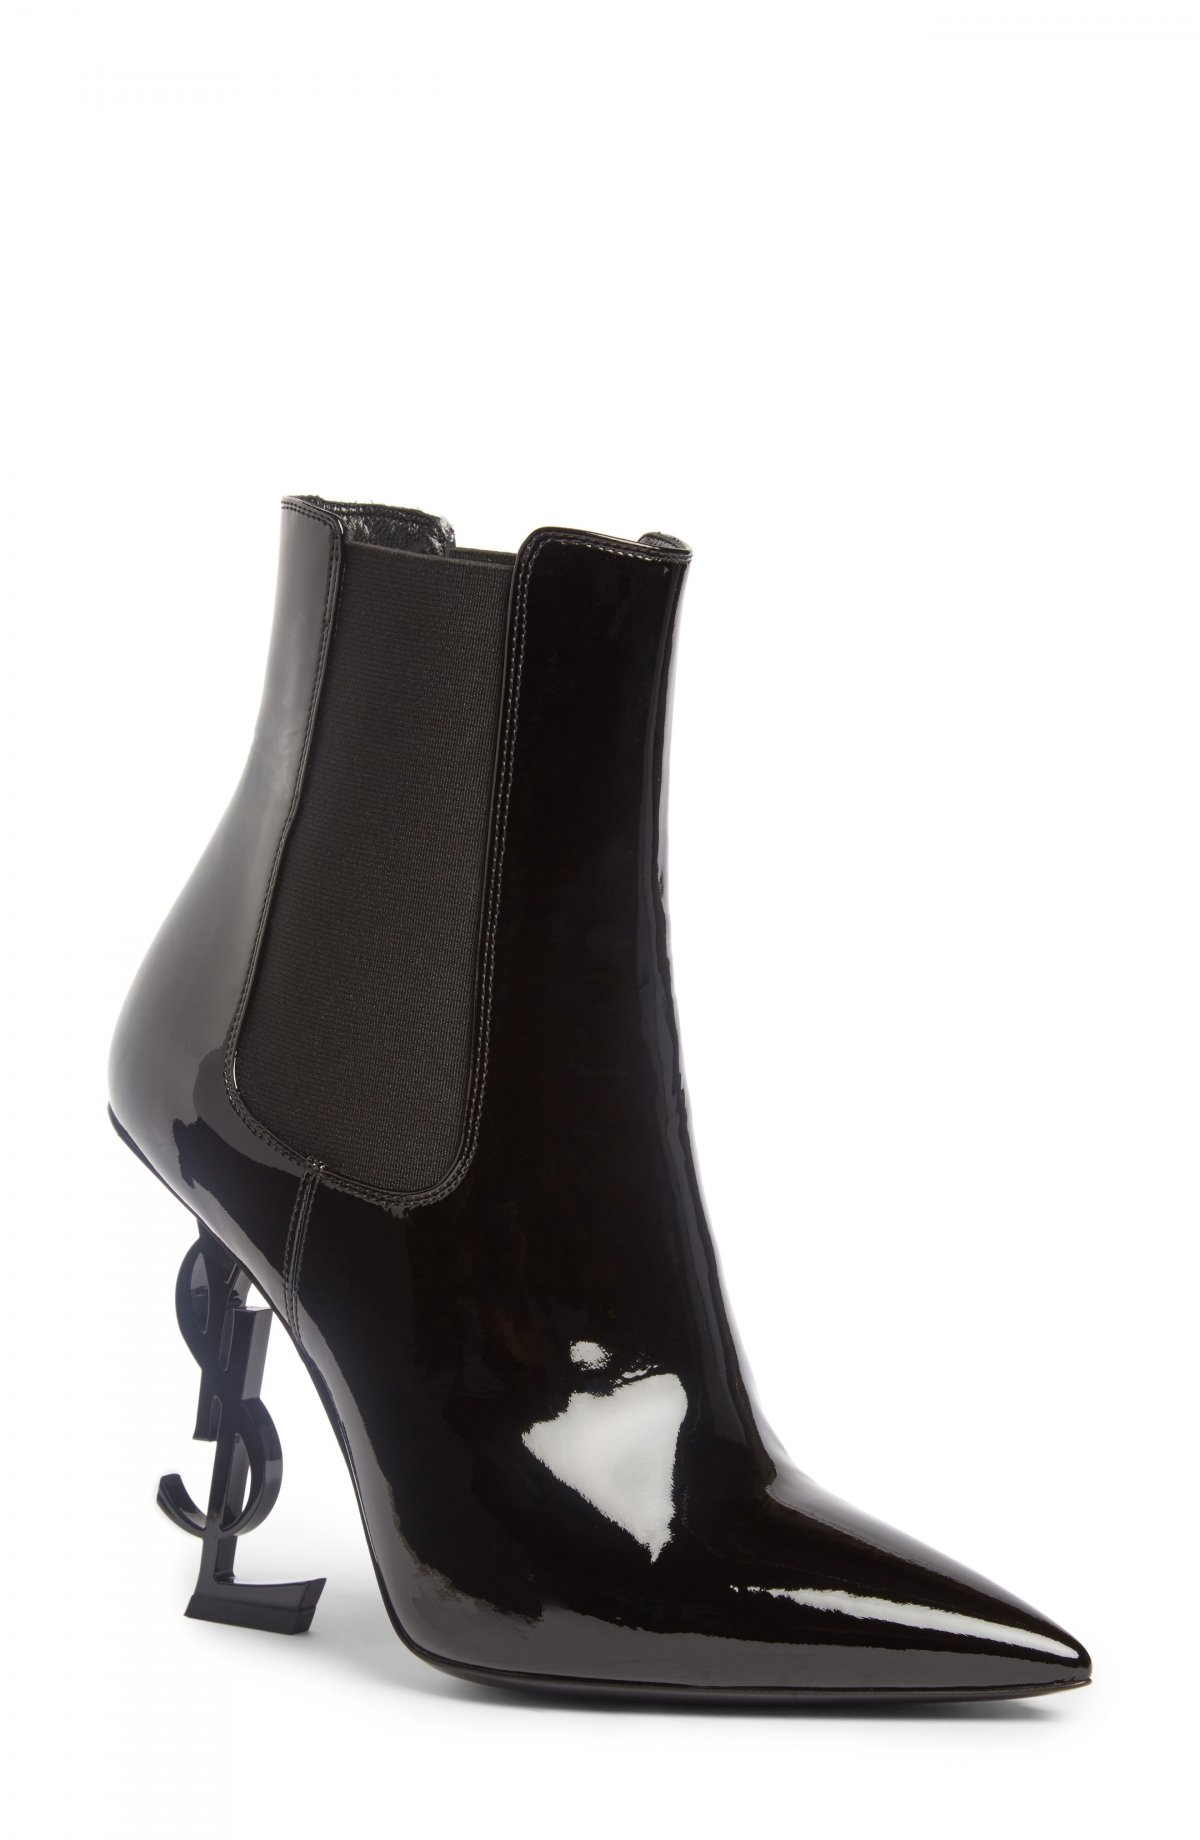 Opyum YSL Bootie by Saint Laurent, available on nordstrom.com Olivia Culpo Shoes Exact Product